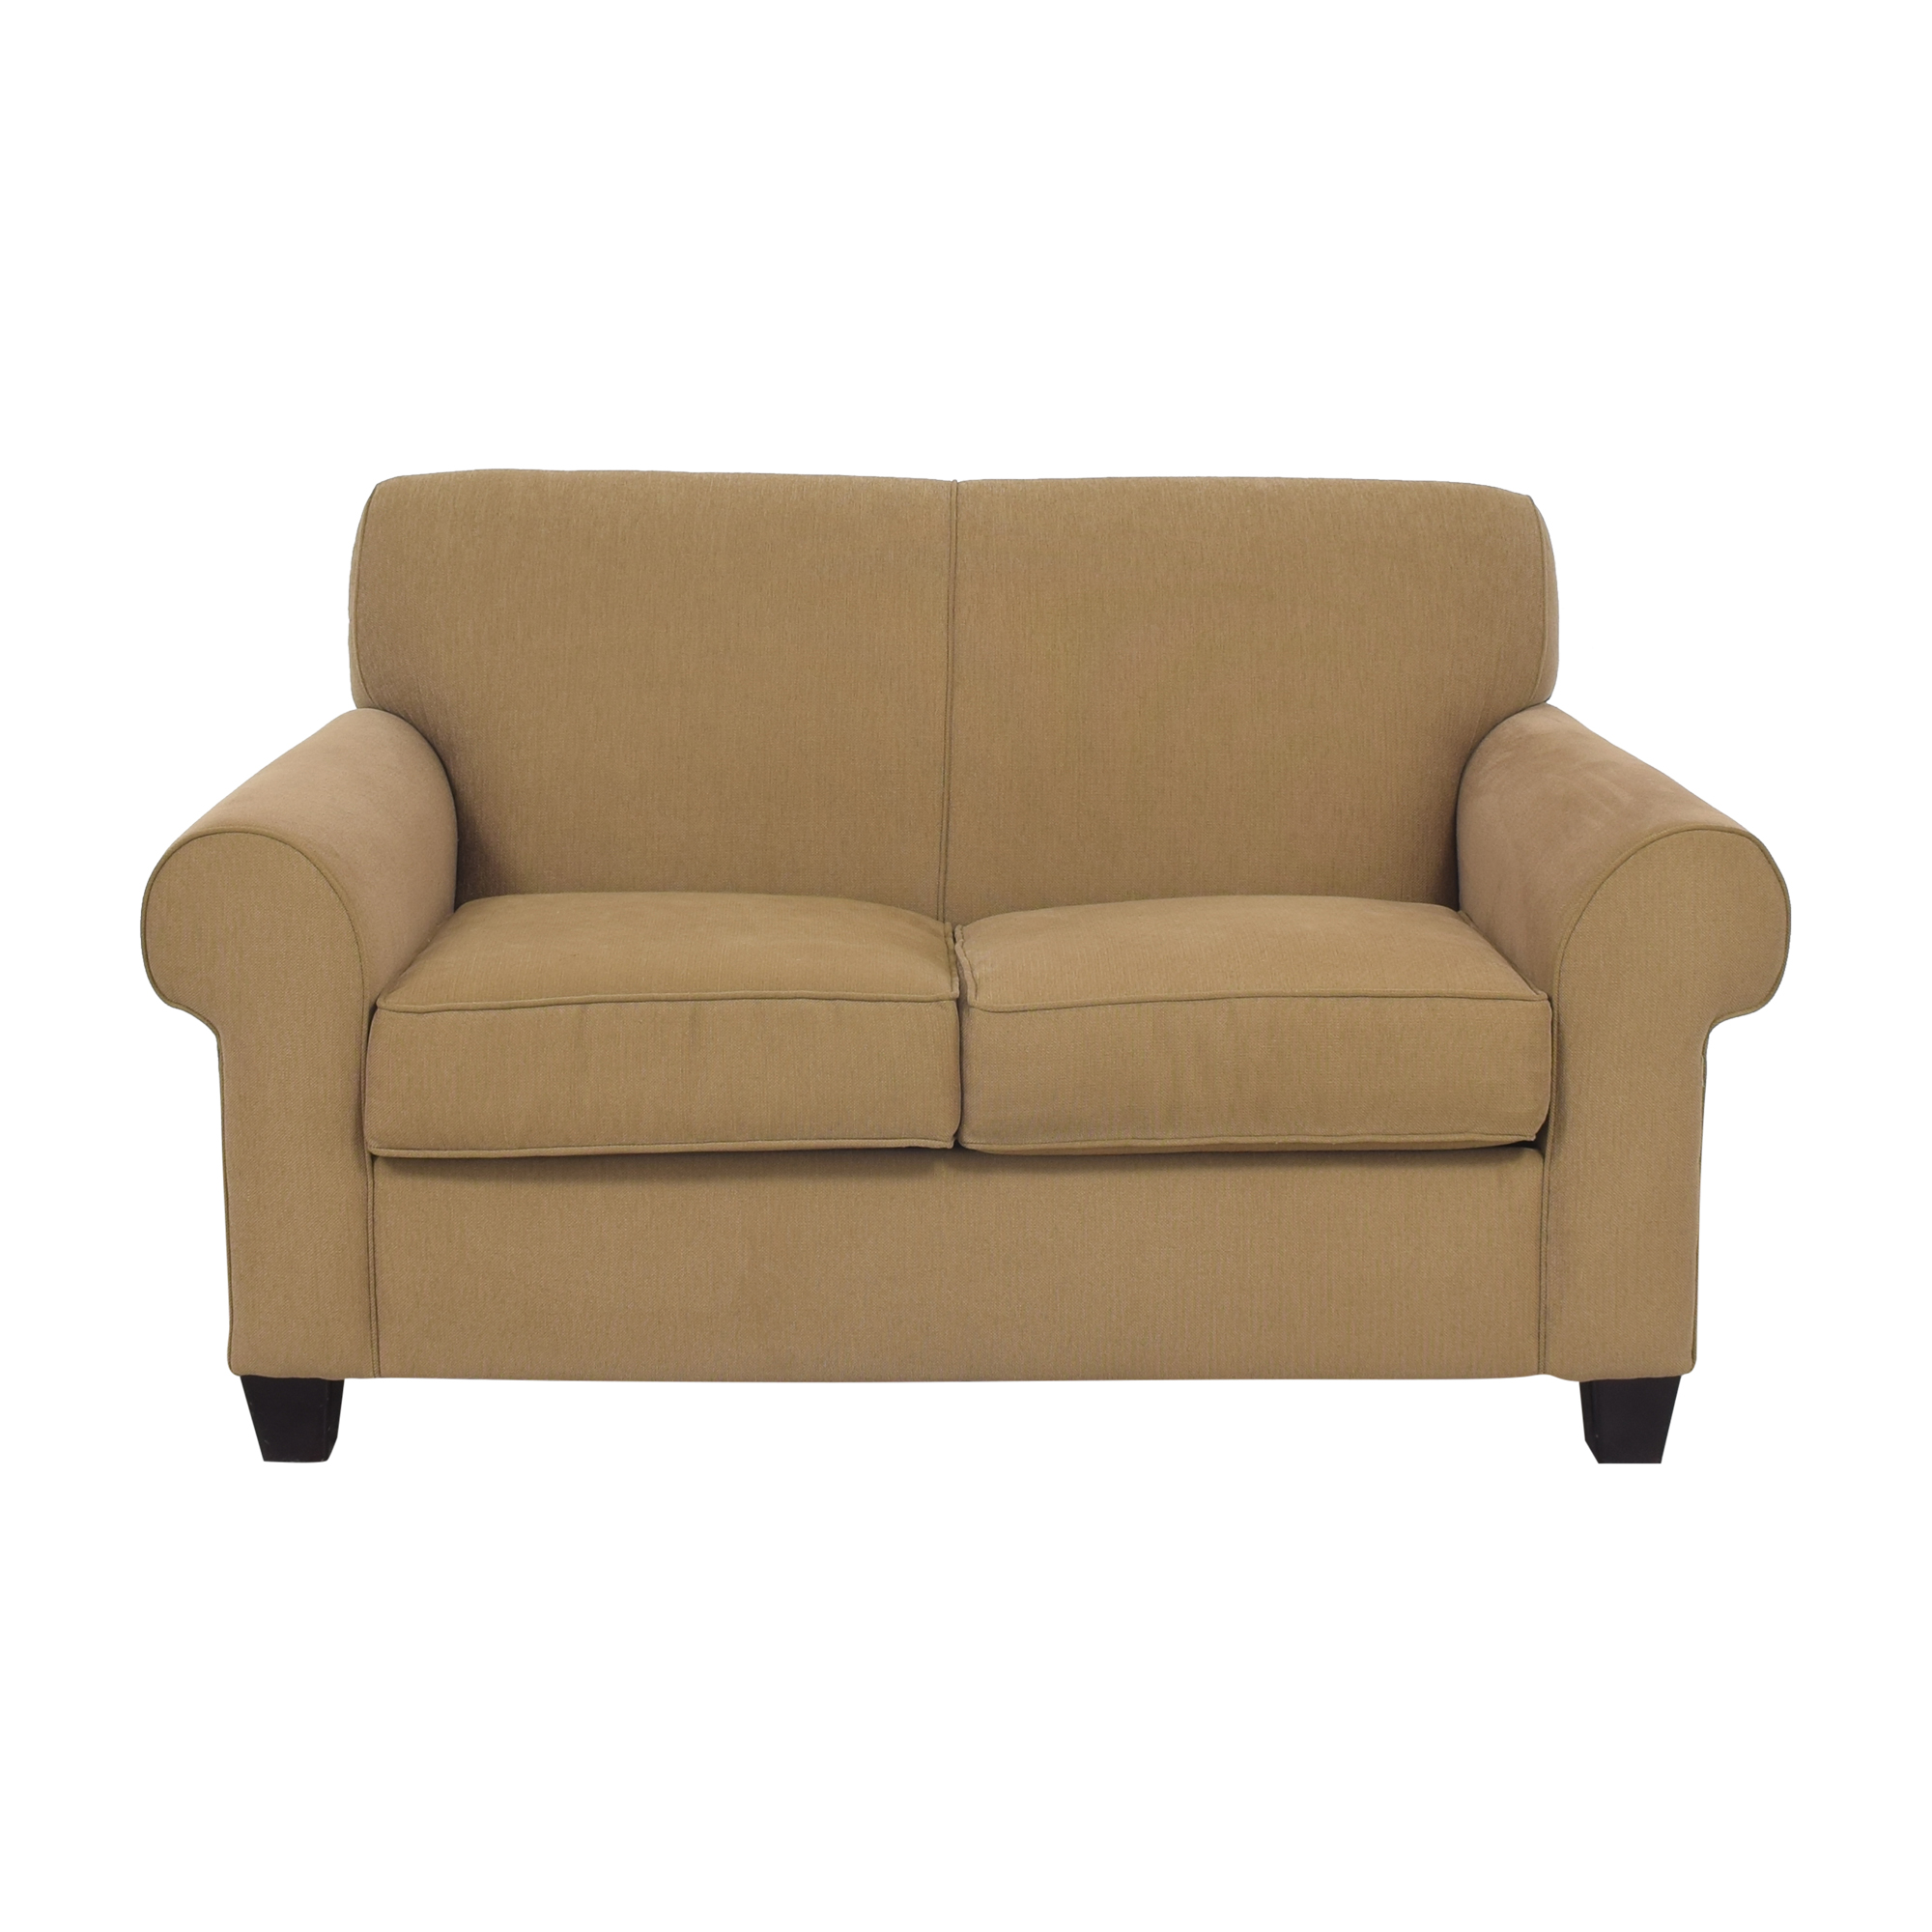 Broyhill Furniture Roll Arm Loveseat Broyhill Furniture